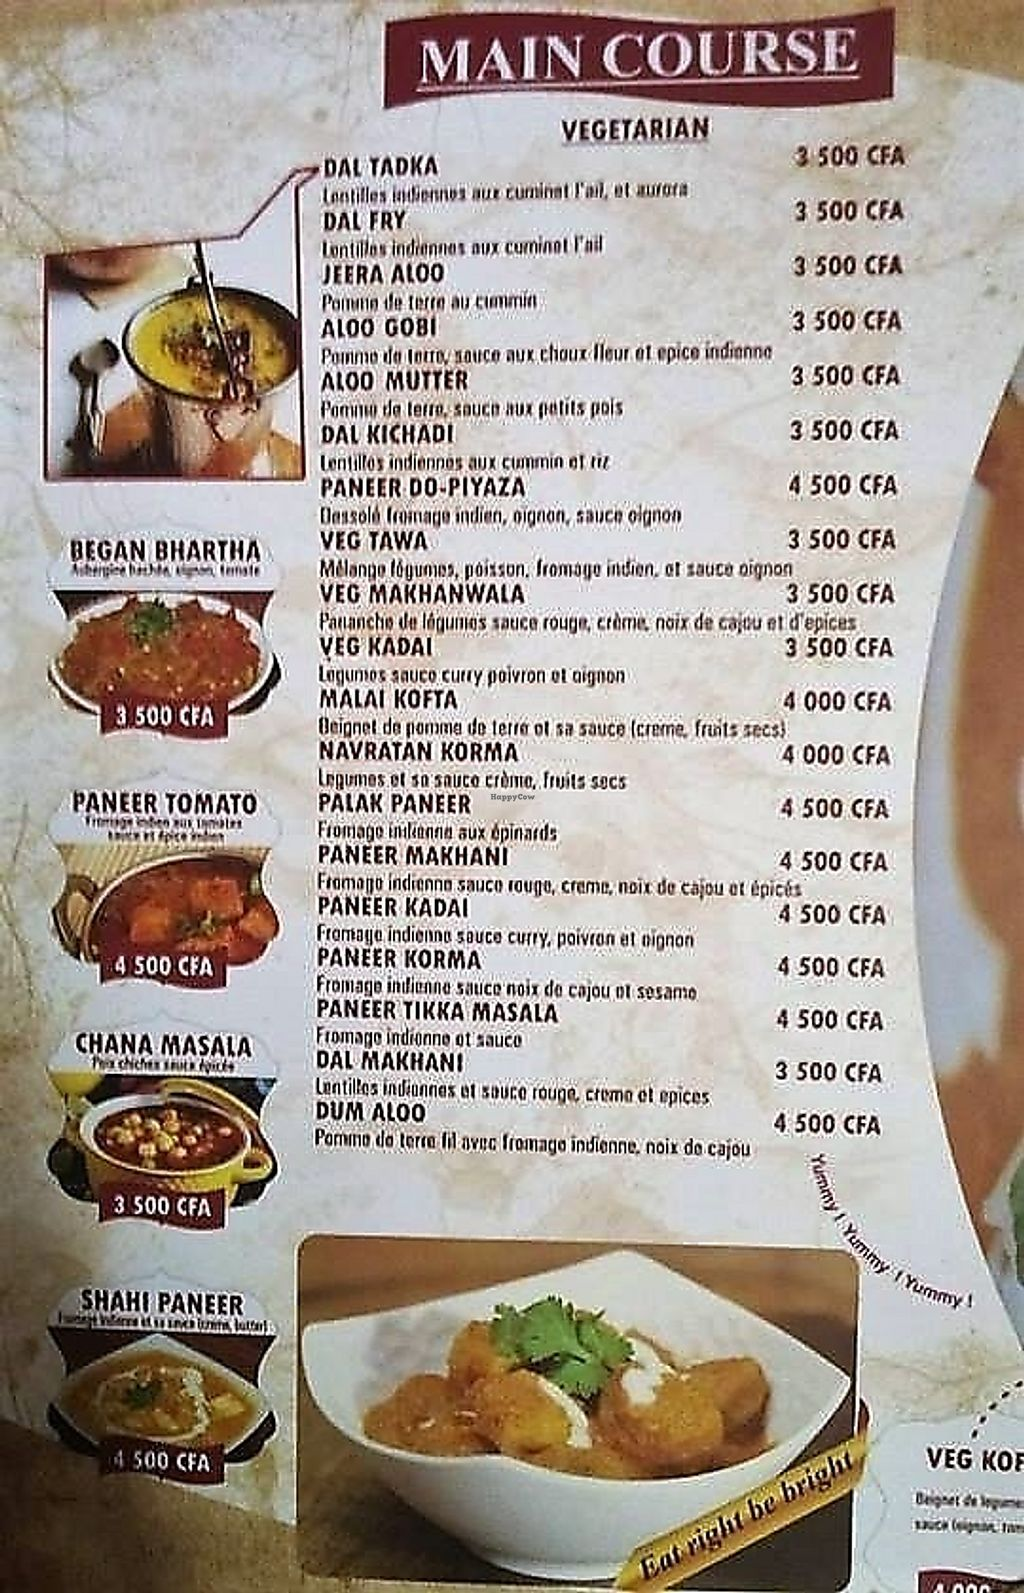 """Photo of Annapurna Indian Restaurant  by <a href=""""/members/profile/EvaBlumenwiese"""">EvaBlumenwiese</a> <br/>New menu (vegetarian dishes) <br/> November 11, 2017  - <a href='/contact/abuse/image/100272/324186'>Report</a>"""